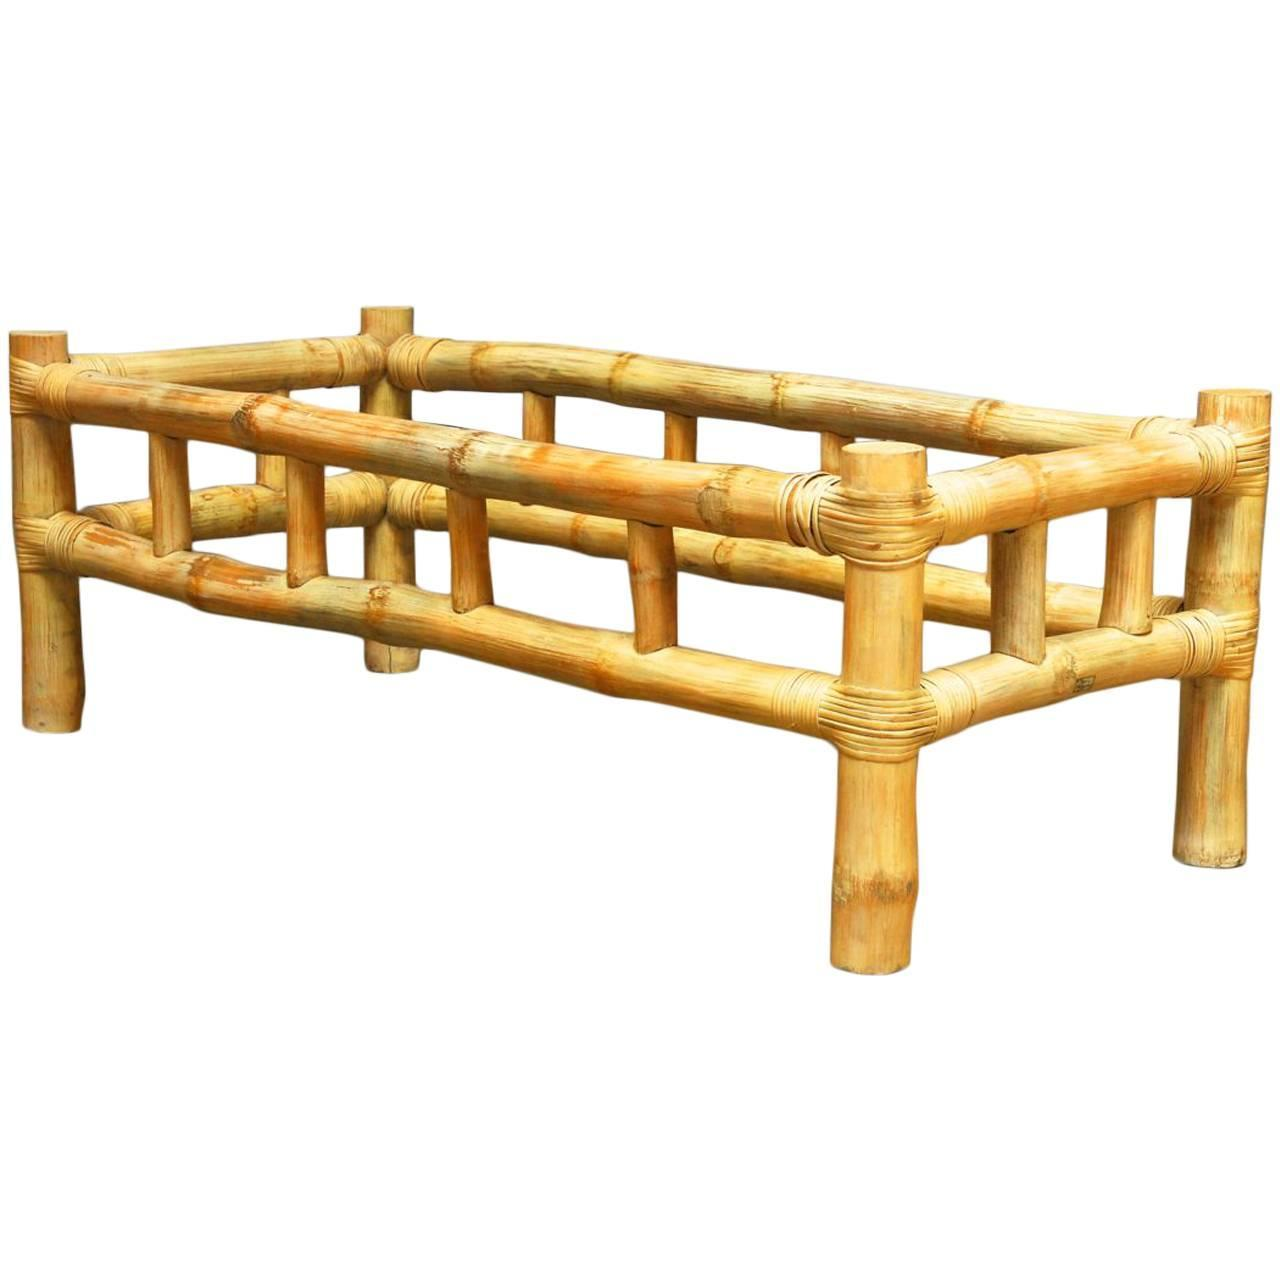 Ralph Lauren Attributed Bamboo Coffee Table